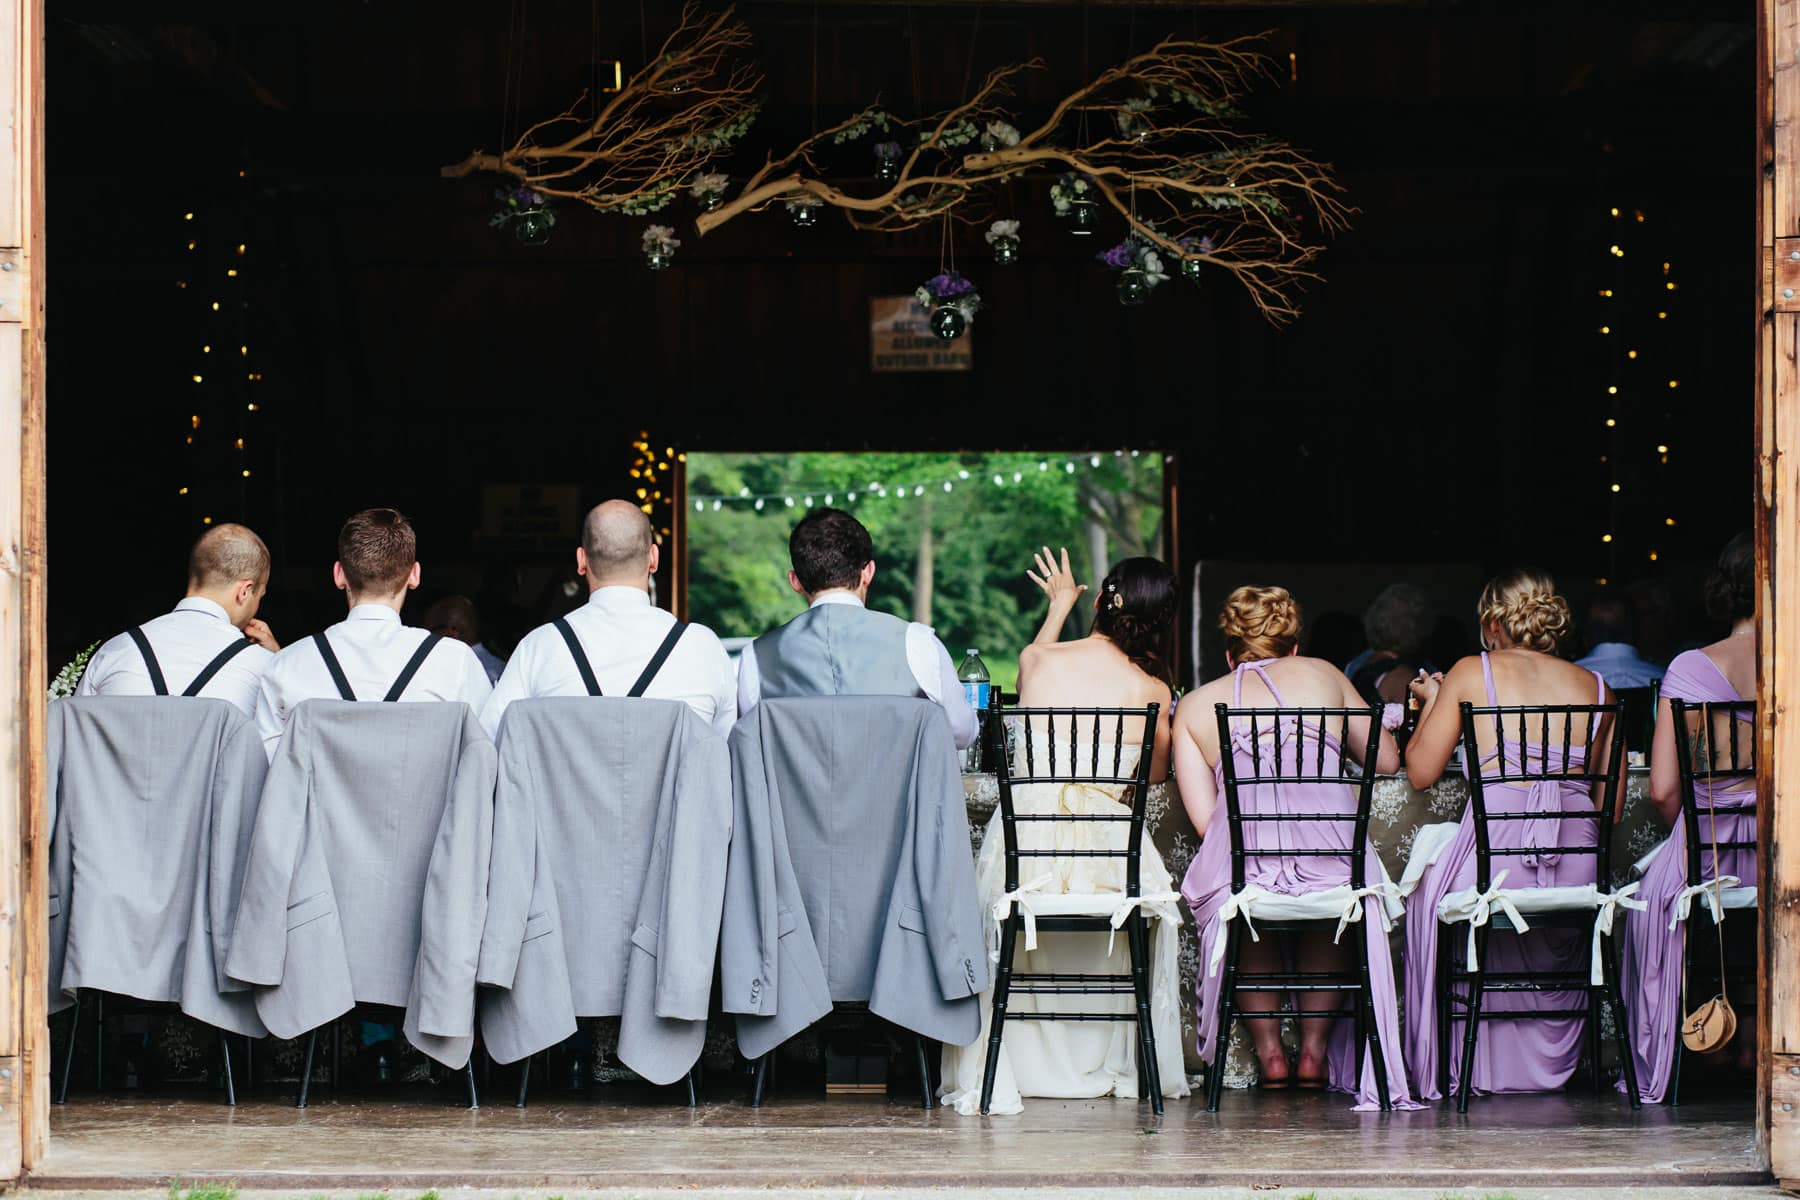 The bride, groom, and wedding party seated in a row during the dinner reception with a large decorative branch overhead at this Ball's Falls wedding.